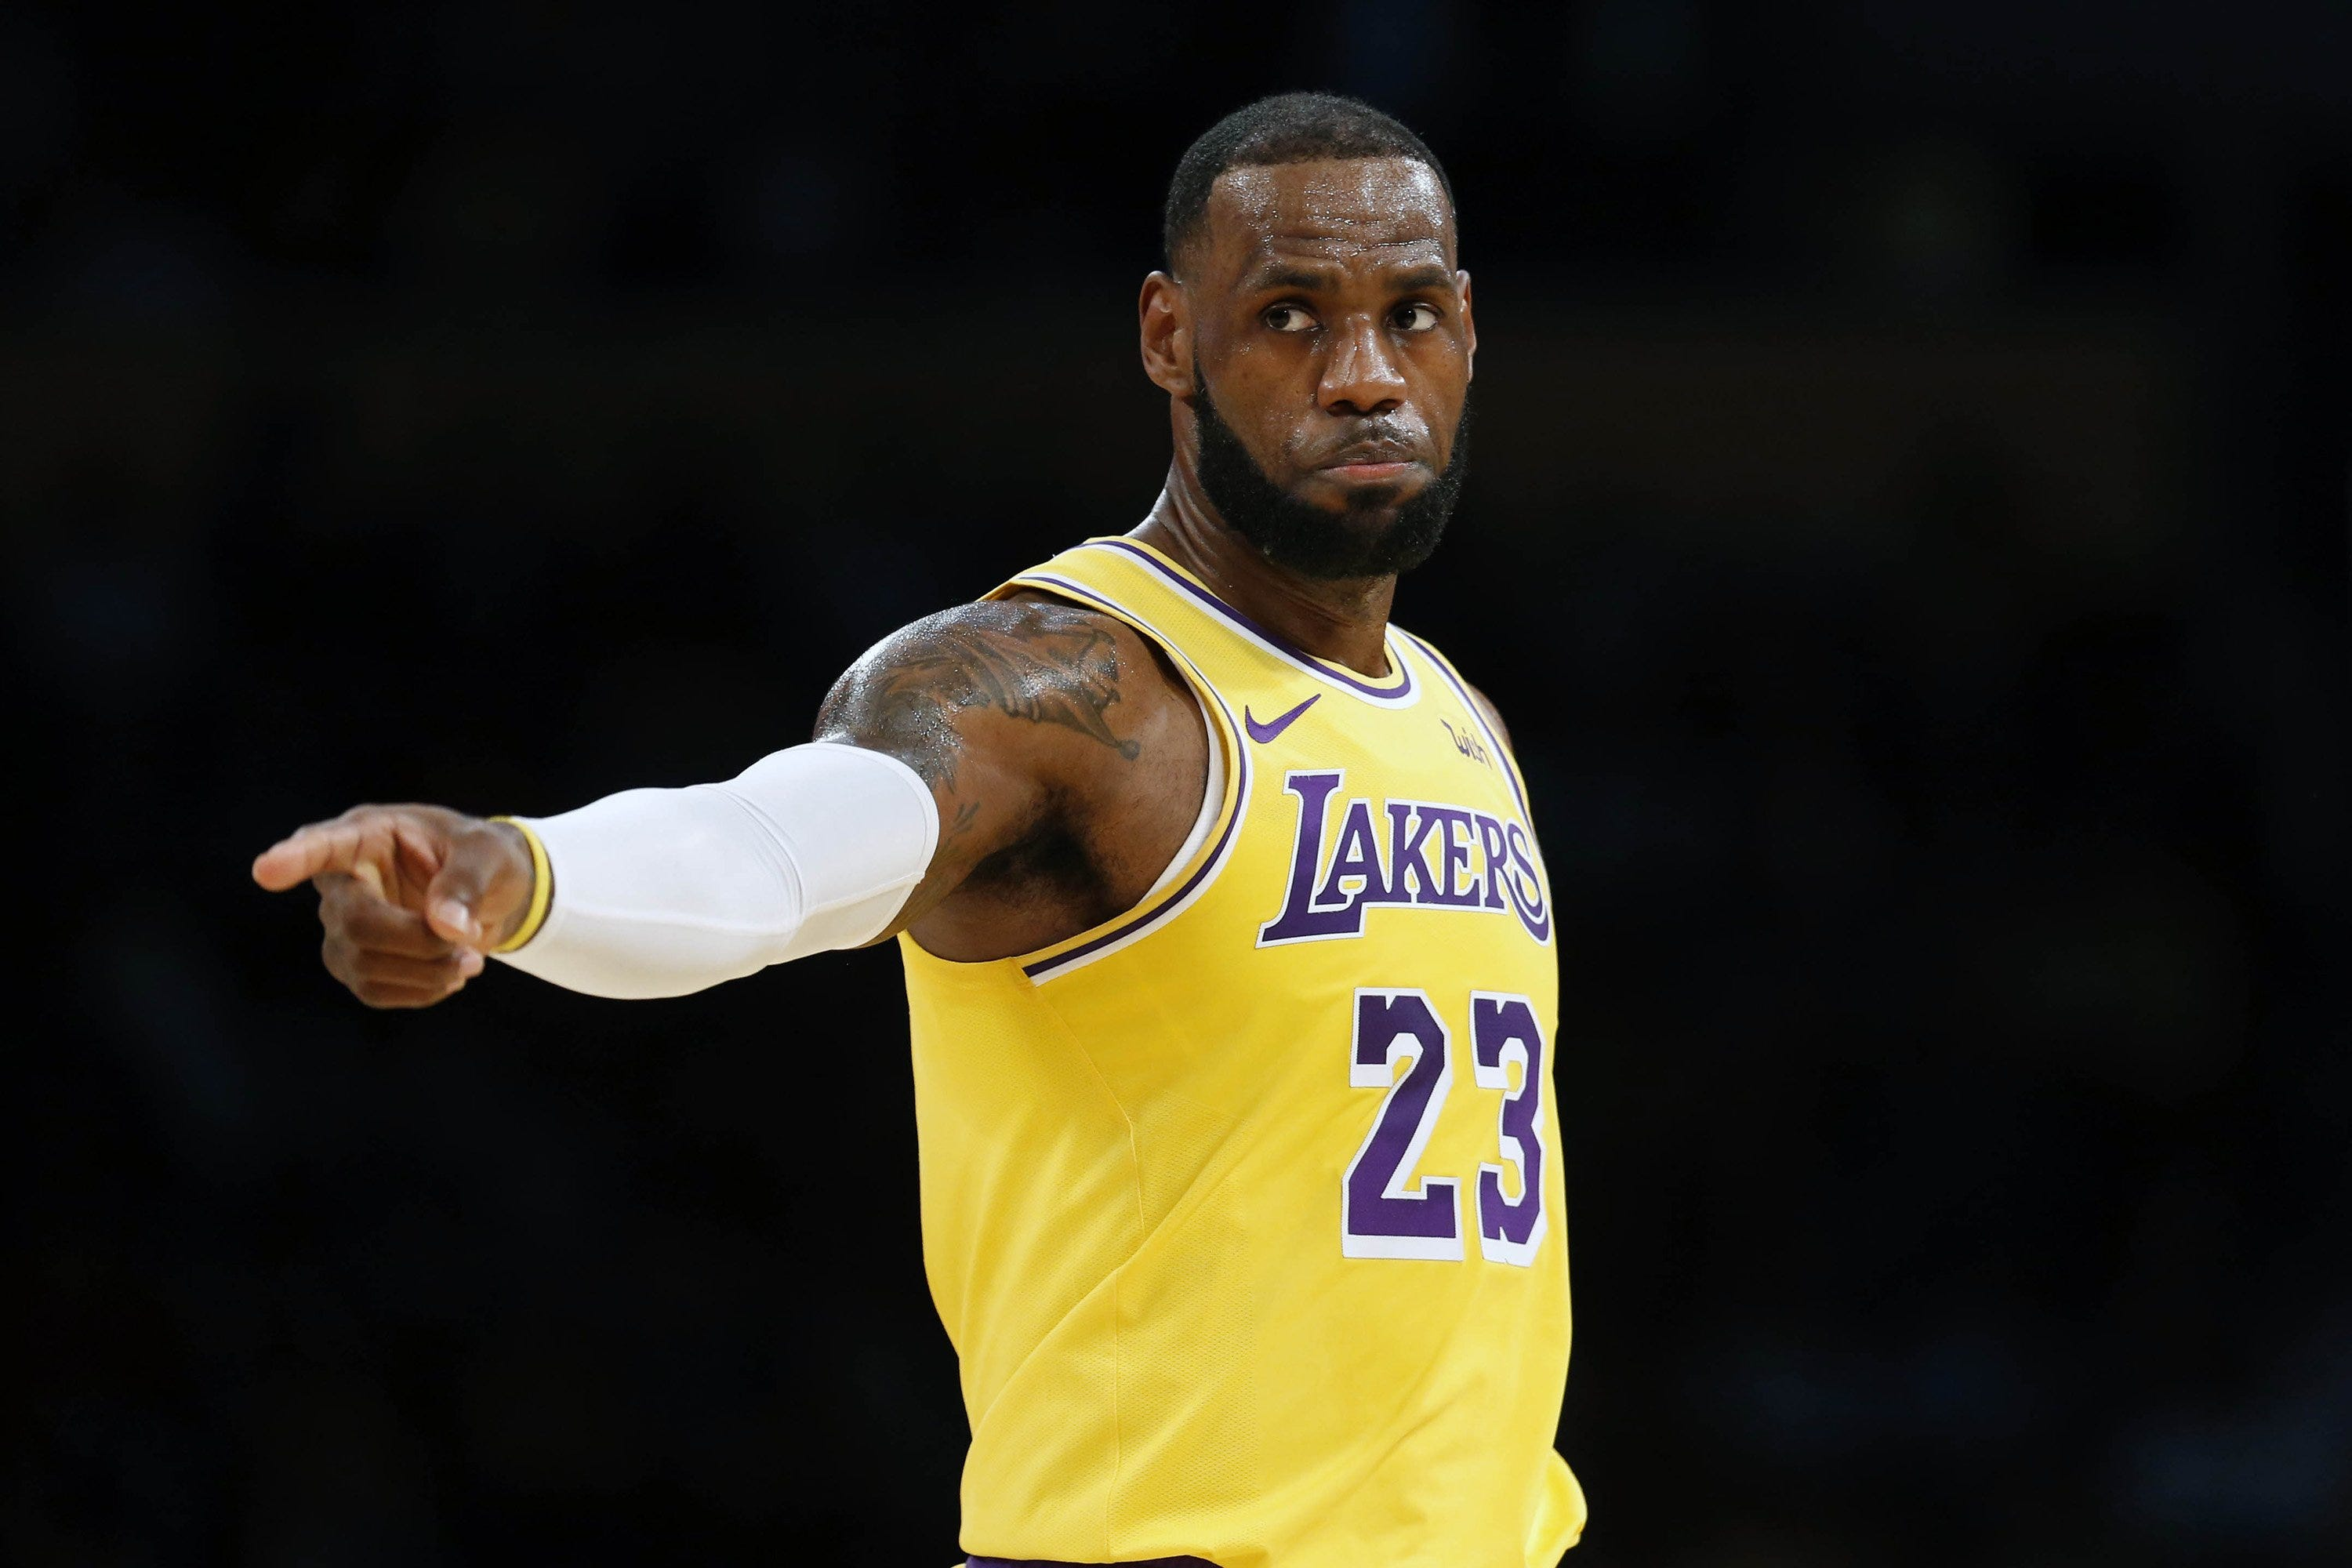 LeBron James wears the purple and gold of the L.A. Lakers this season.